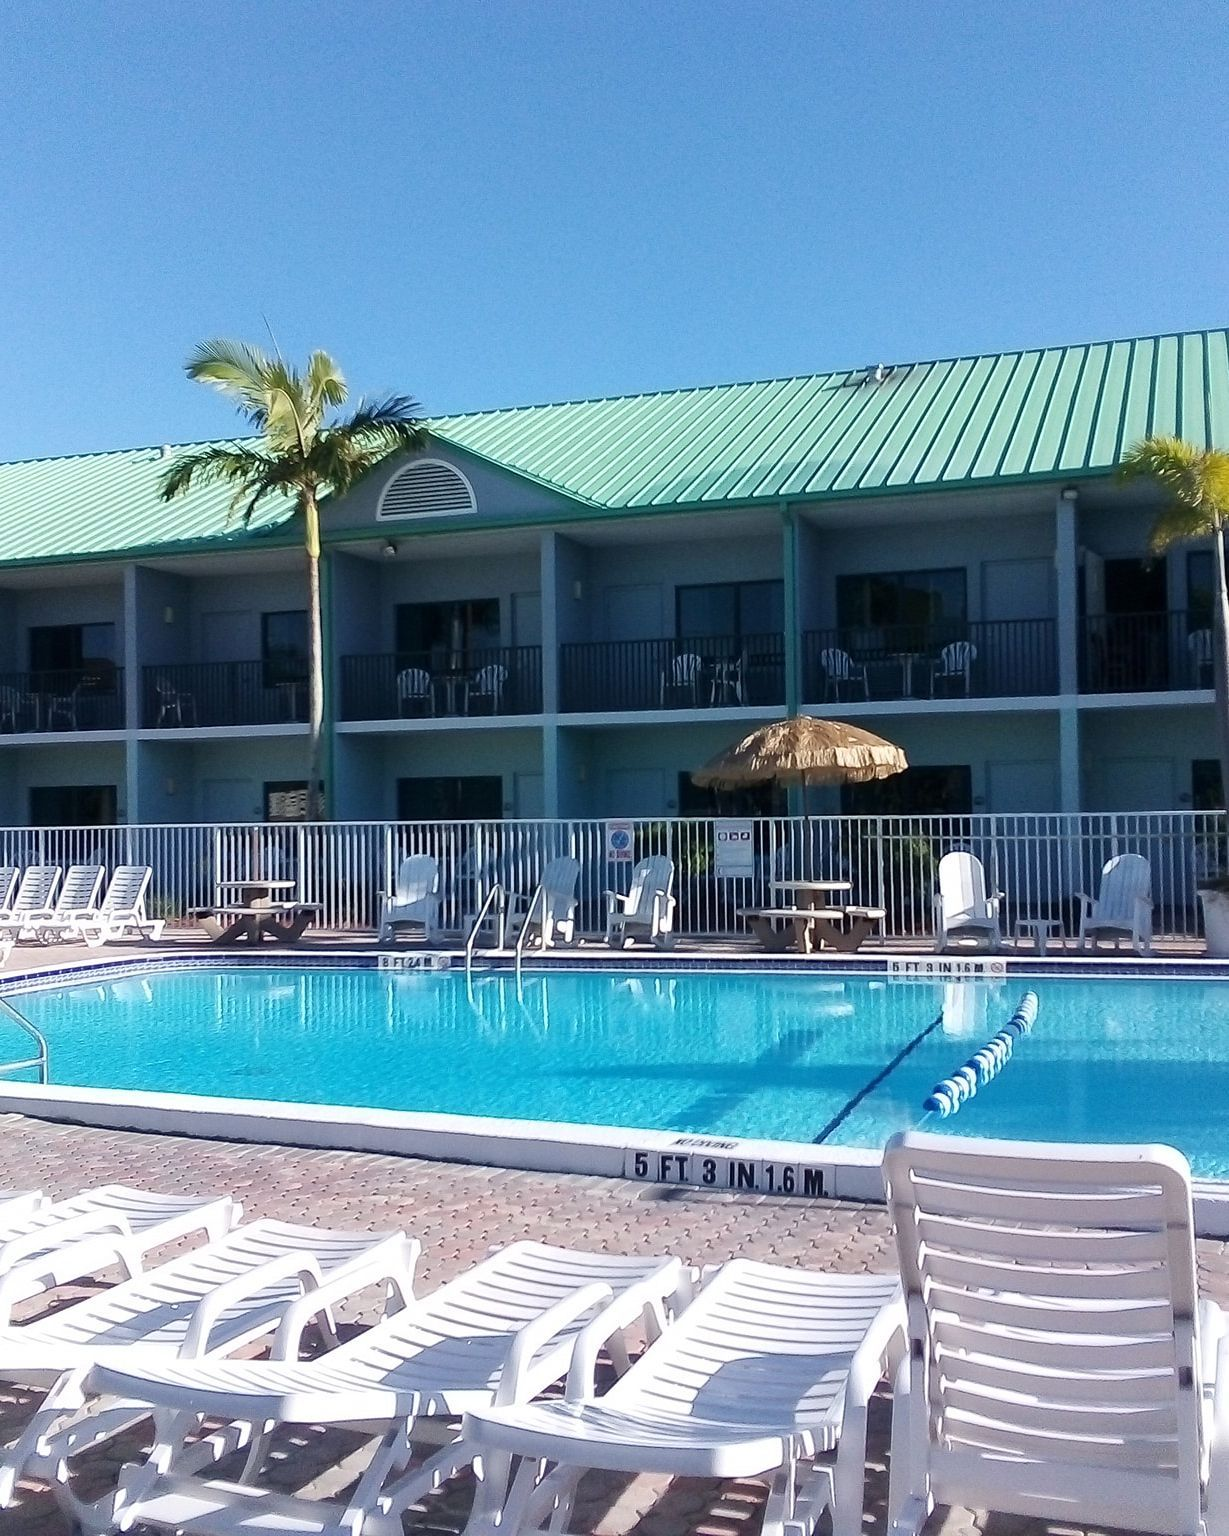 Pool Days In Cocoabeach What S Better Andrew Richards